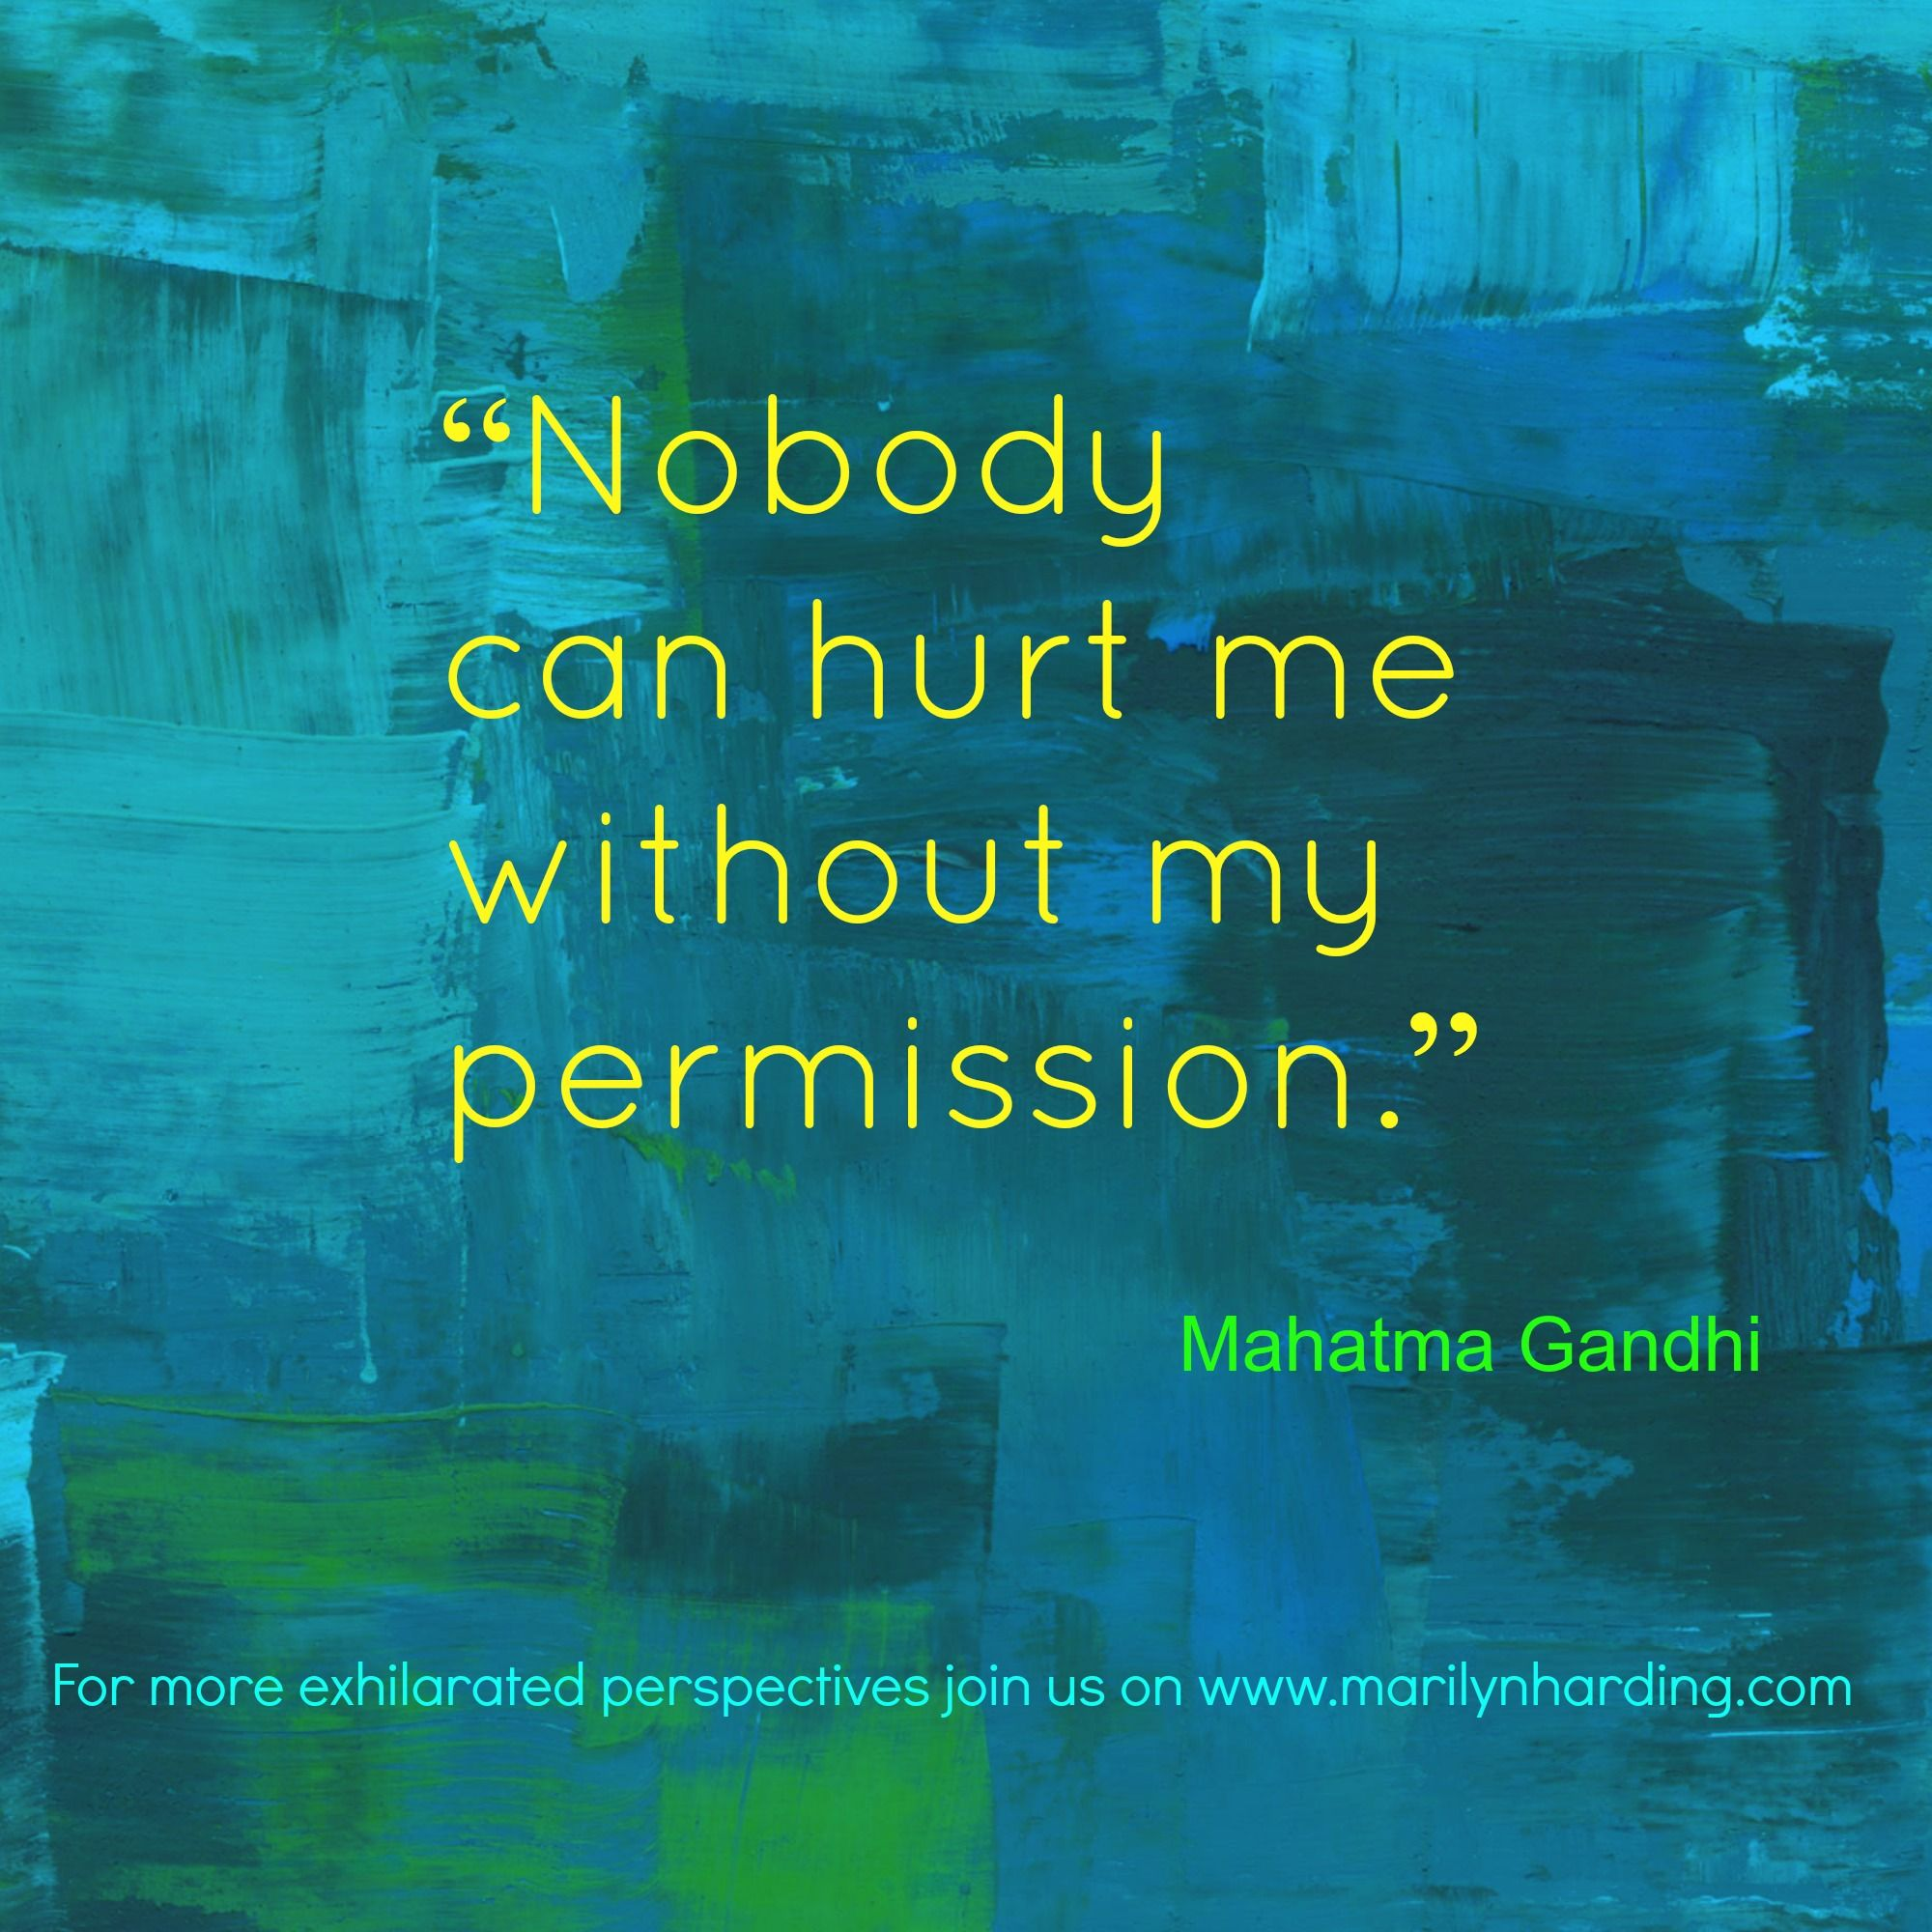 """Nobody can hurt me without my permission."" Gandhi  Who holds the reins of your personal power?  The more out of alignment we are with our Self, the more into another's emotional orbit and control we are drawn.  Have you given away your personal power? Choose instead to respond from the perfect fortress of the centre of your heart.  #Personalpower, #relationships, #selfempowerment, #Gandhi,   For more exhilarated perspectives join us on www.marilynharding.com"